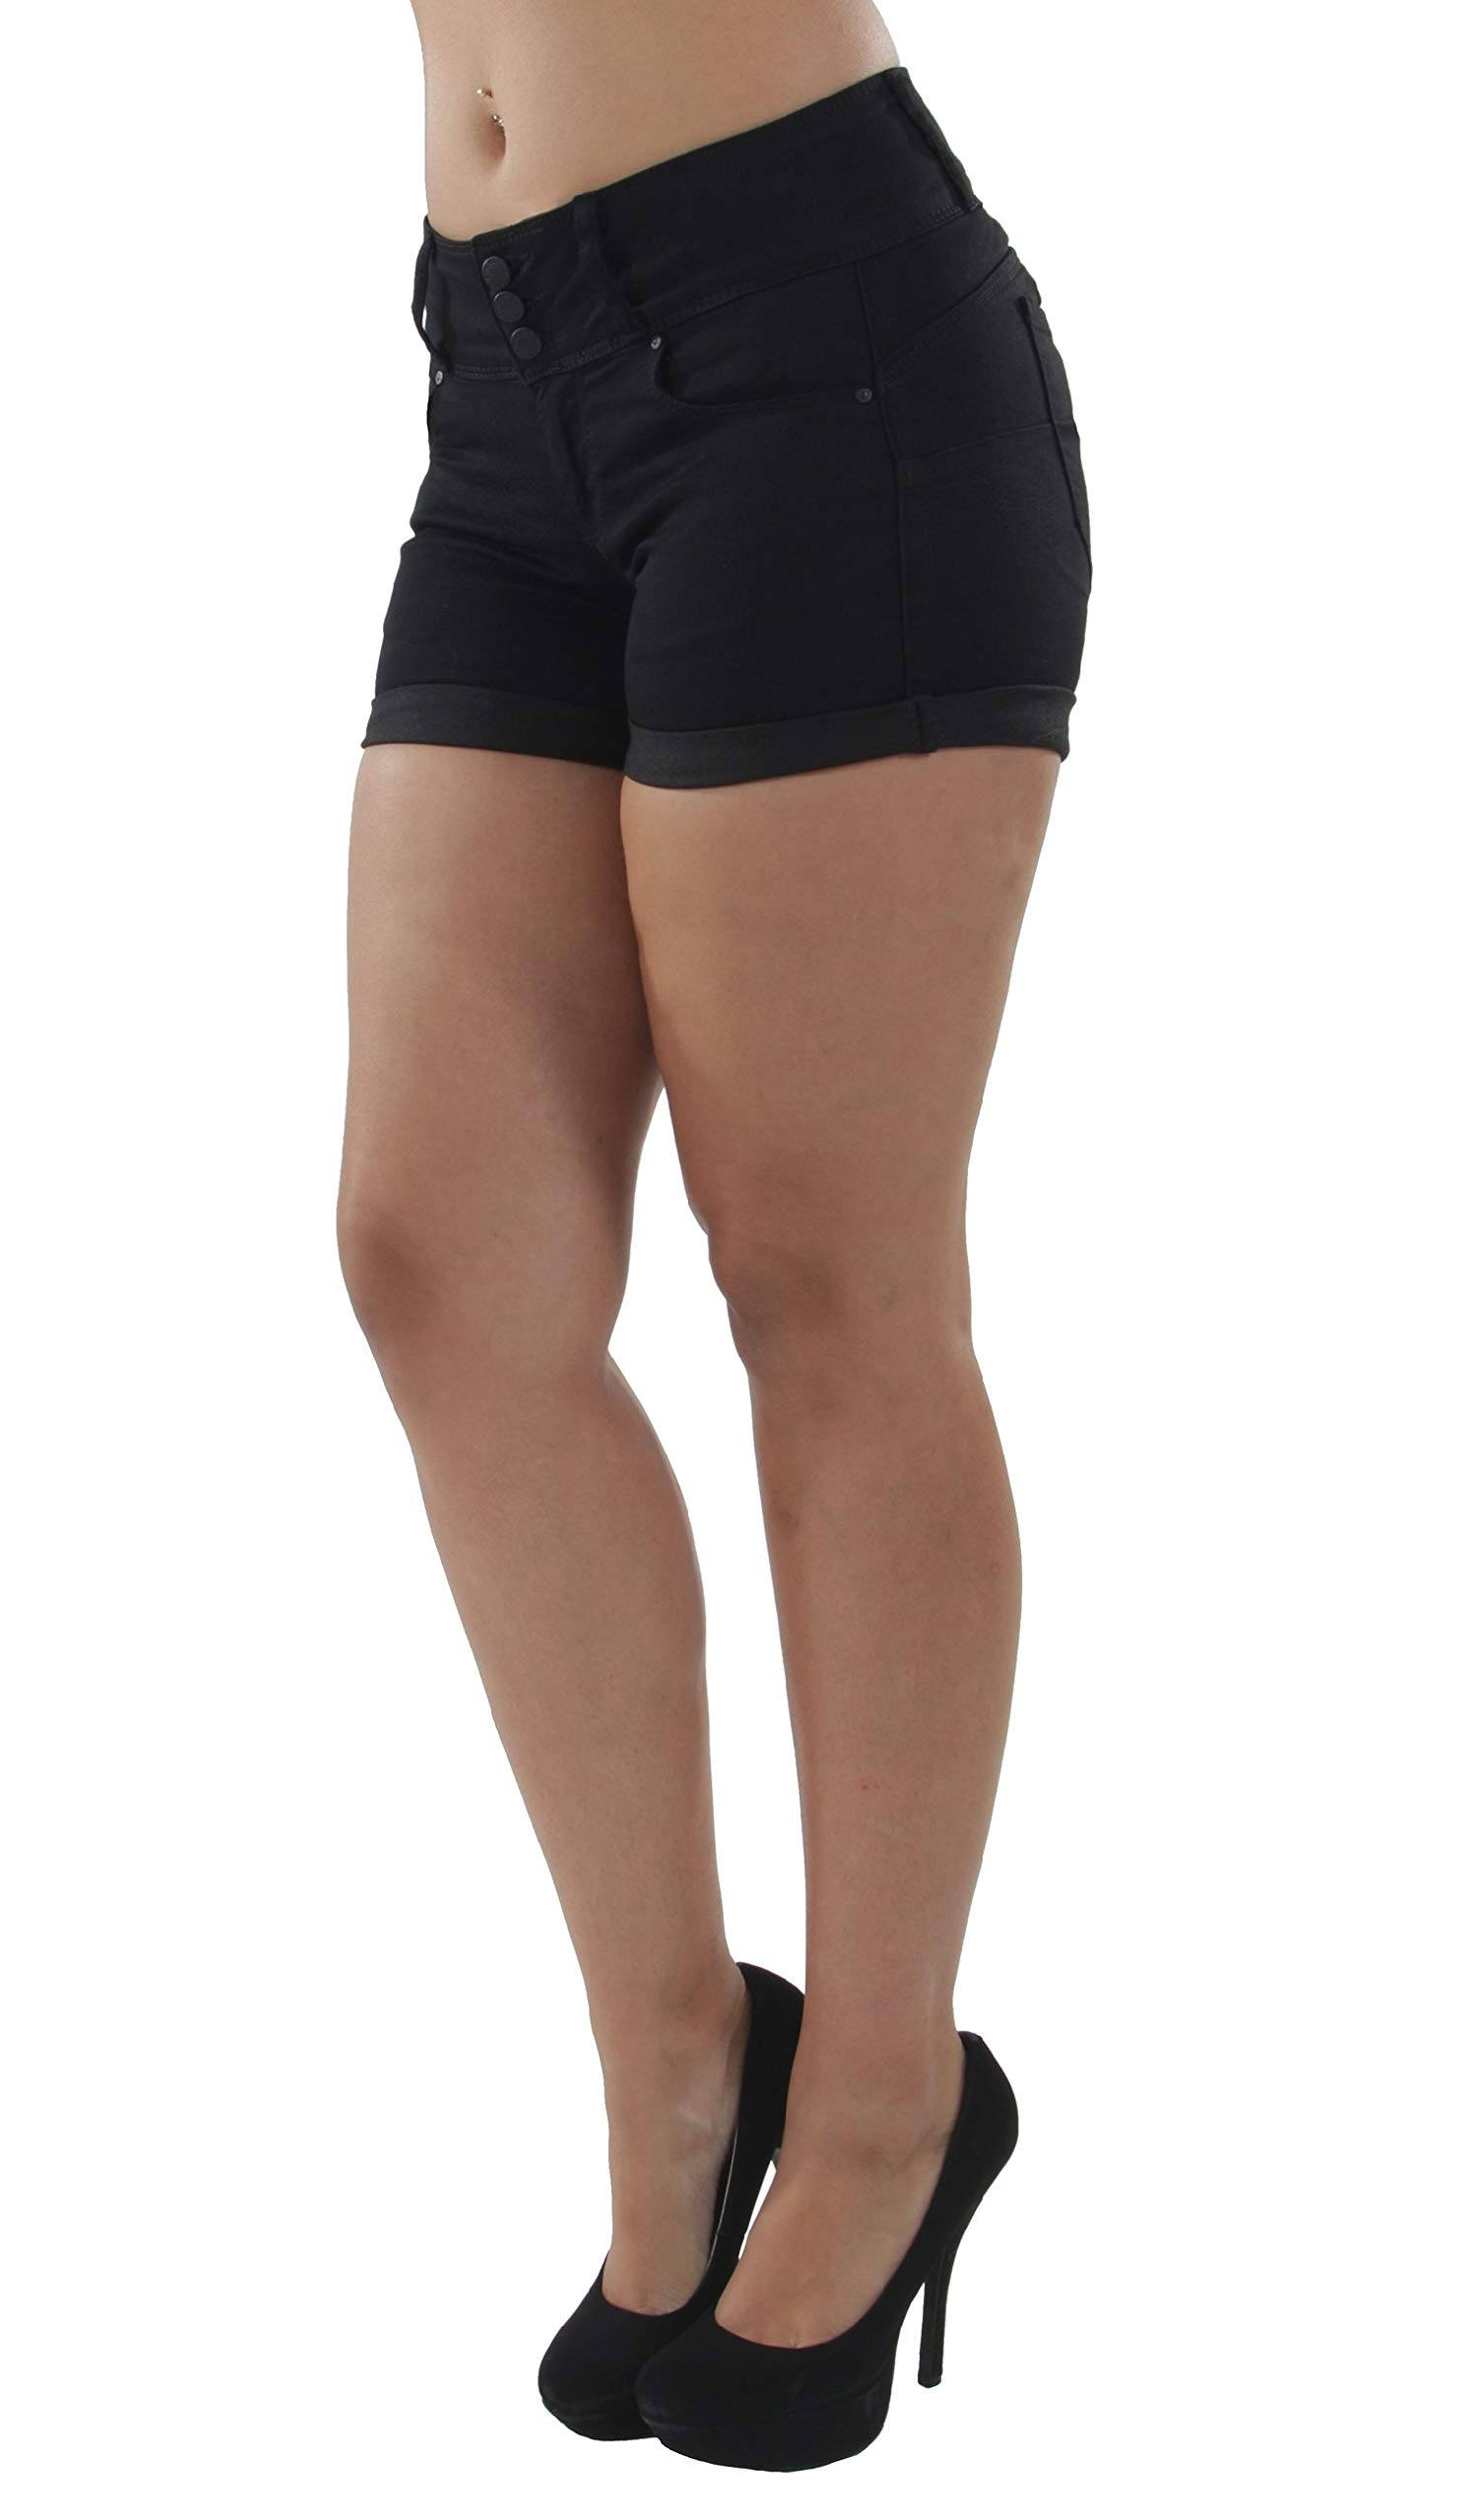 Fashion2Love 90099XL(SH) - Plus Size, Colombian Design, Mid Waist, Butt Lift, Booty Shorts in Black Size 1XL by Fashion2Love (Image #2)